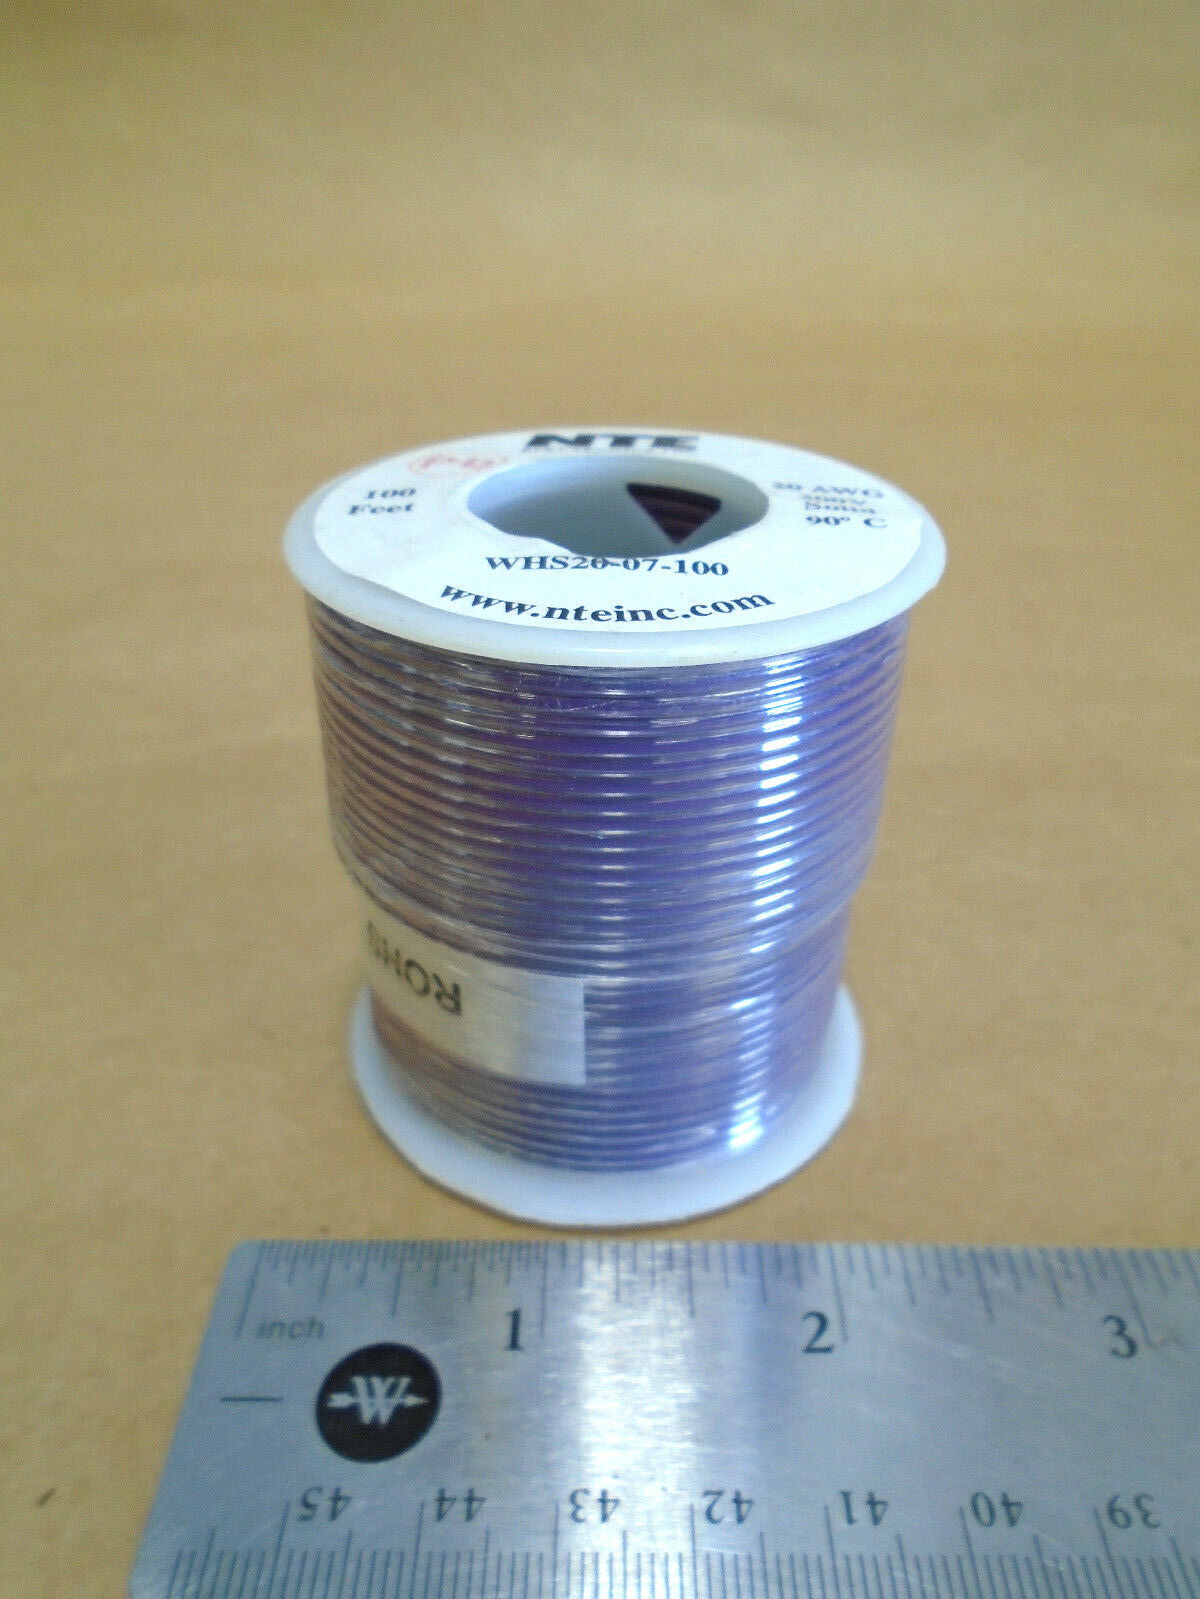 ( 100 FT Spool ) NTE WHS20-07-100 ( 20 AWG ) Solid Hook Up Wire 300V ( Purple )